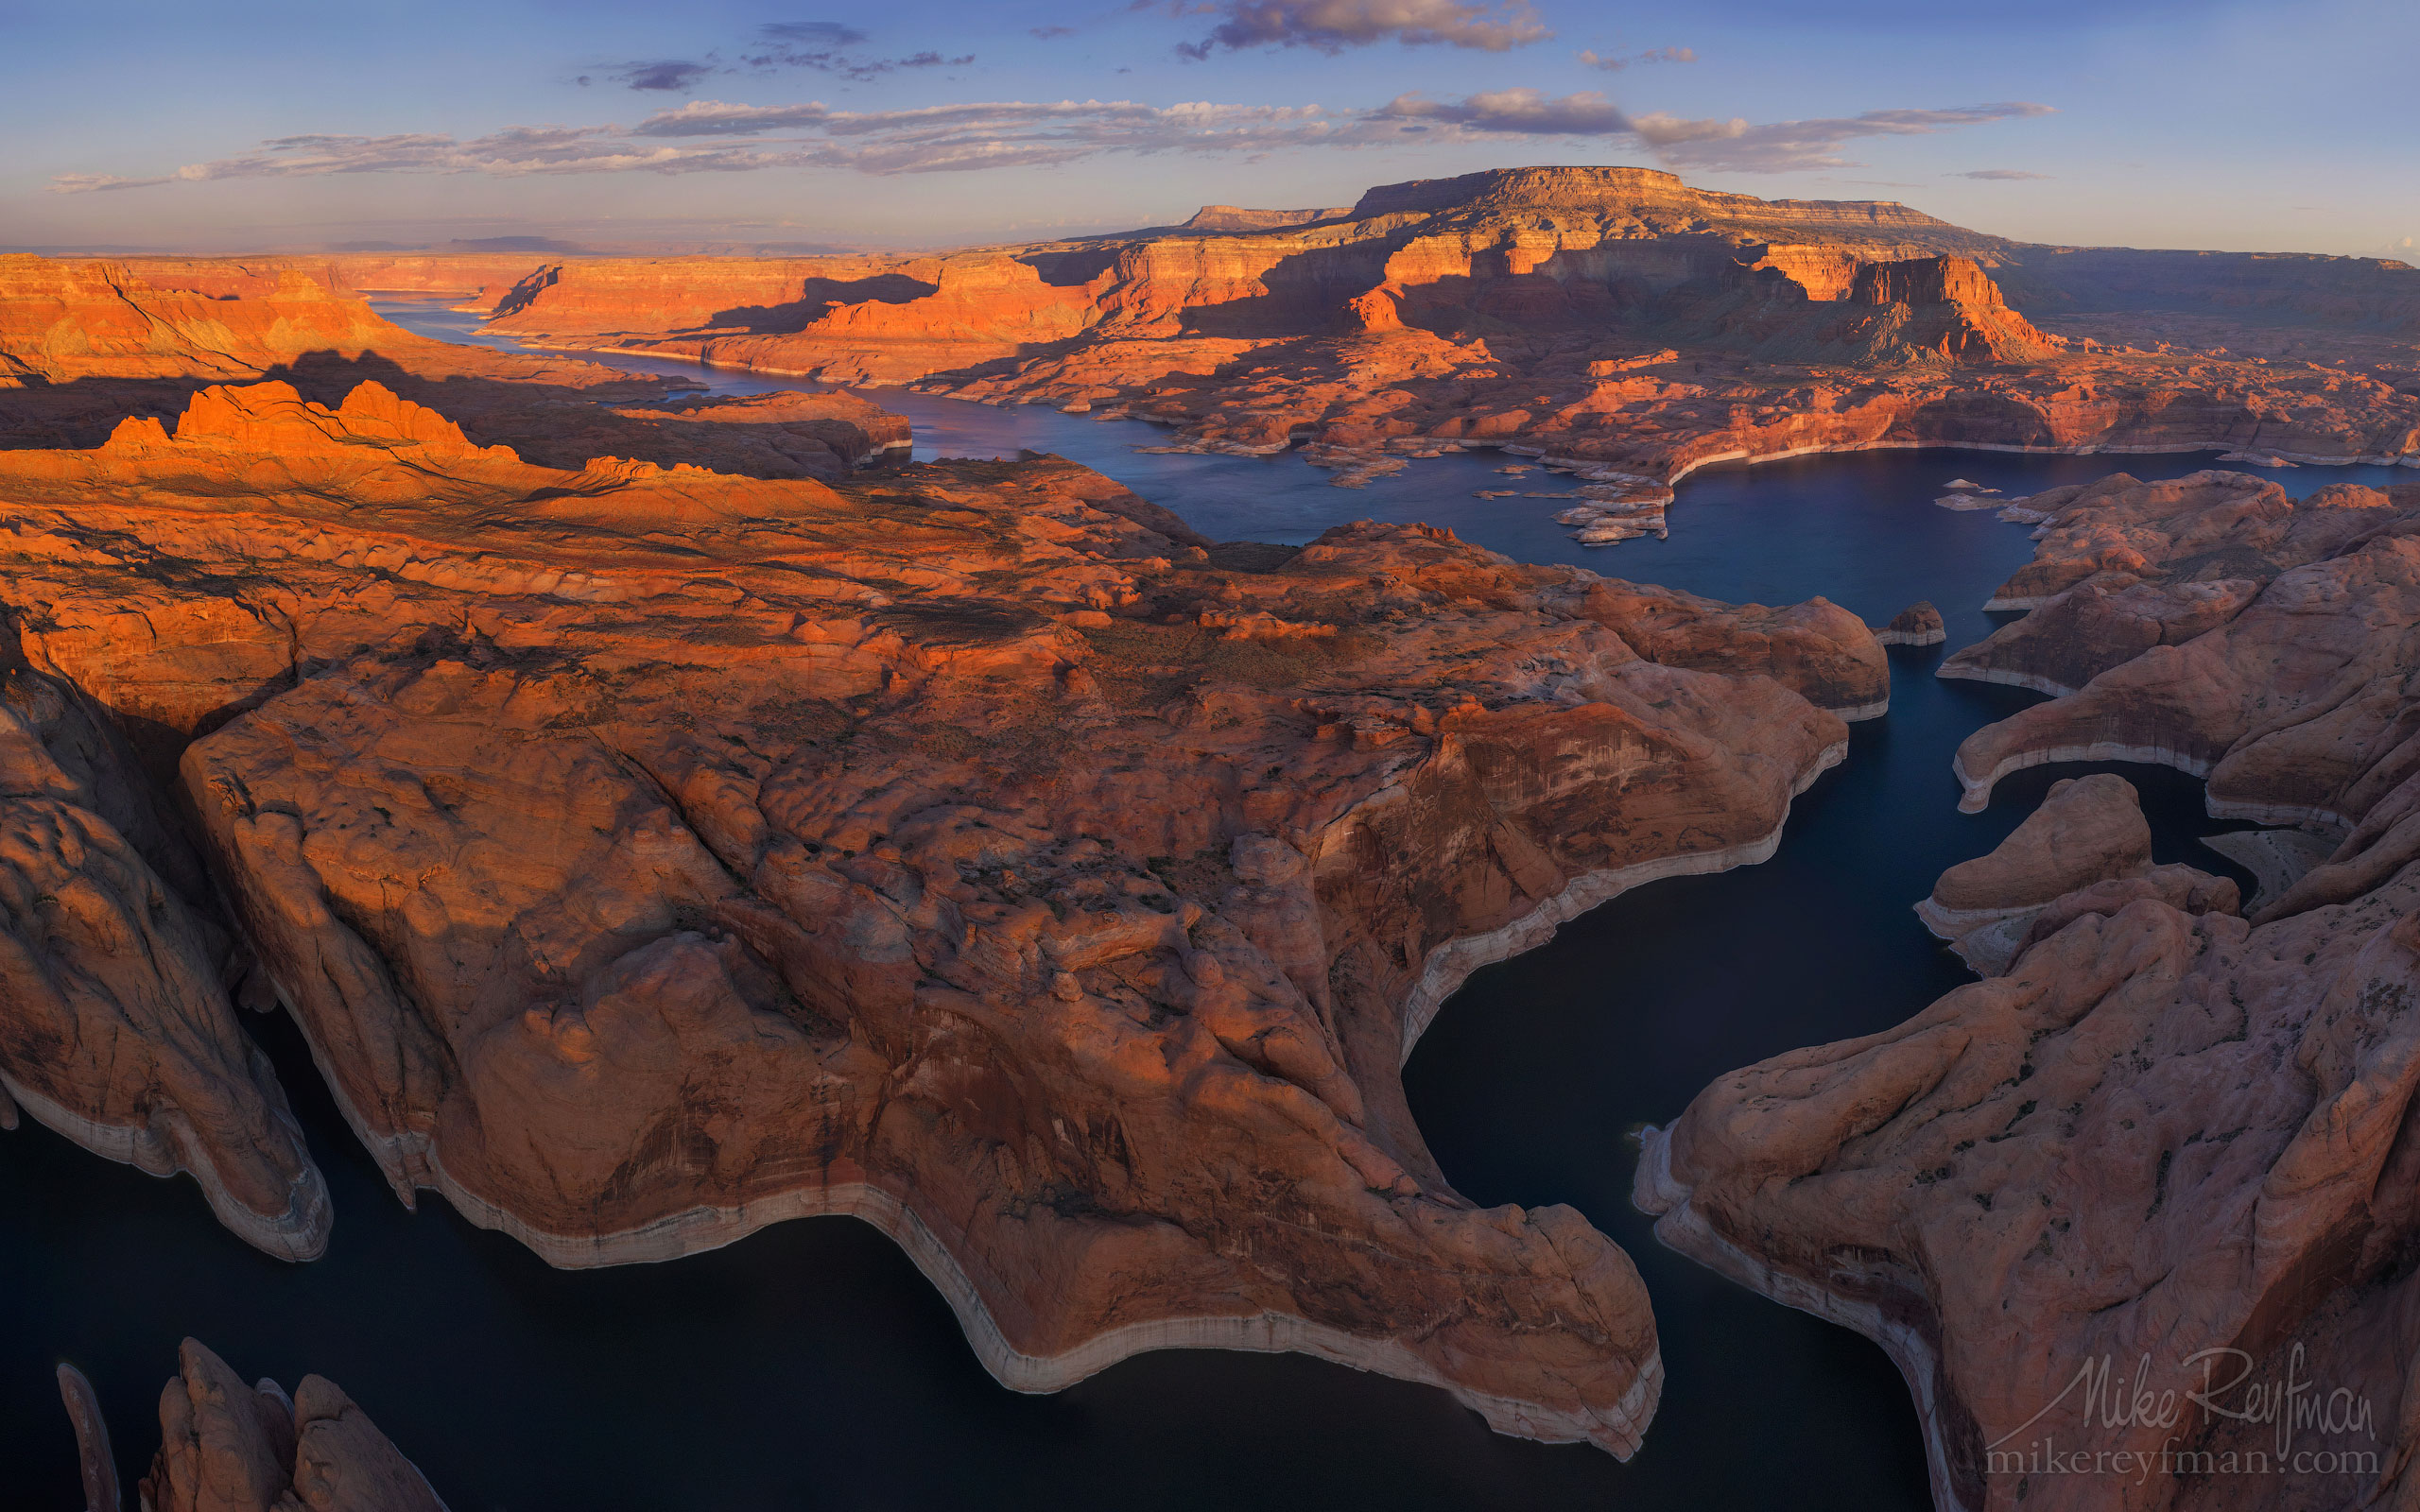 Lake Powell, Glen Canyon NRA, Utah/Arizona, USA. Aerial. 072-LP3_O3X5327-31.jpg - Lake Powell, Glen Canyon NAR. Colorado and Sun Juan Rivers. Utah/Arizona, USA  - Mike Reyfman Photography